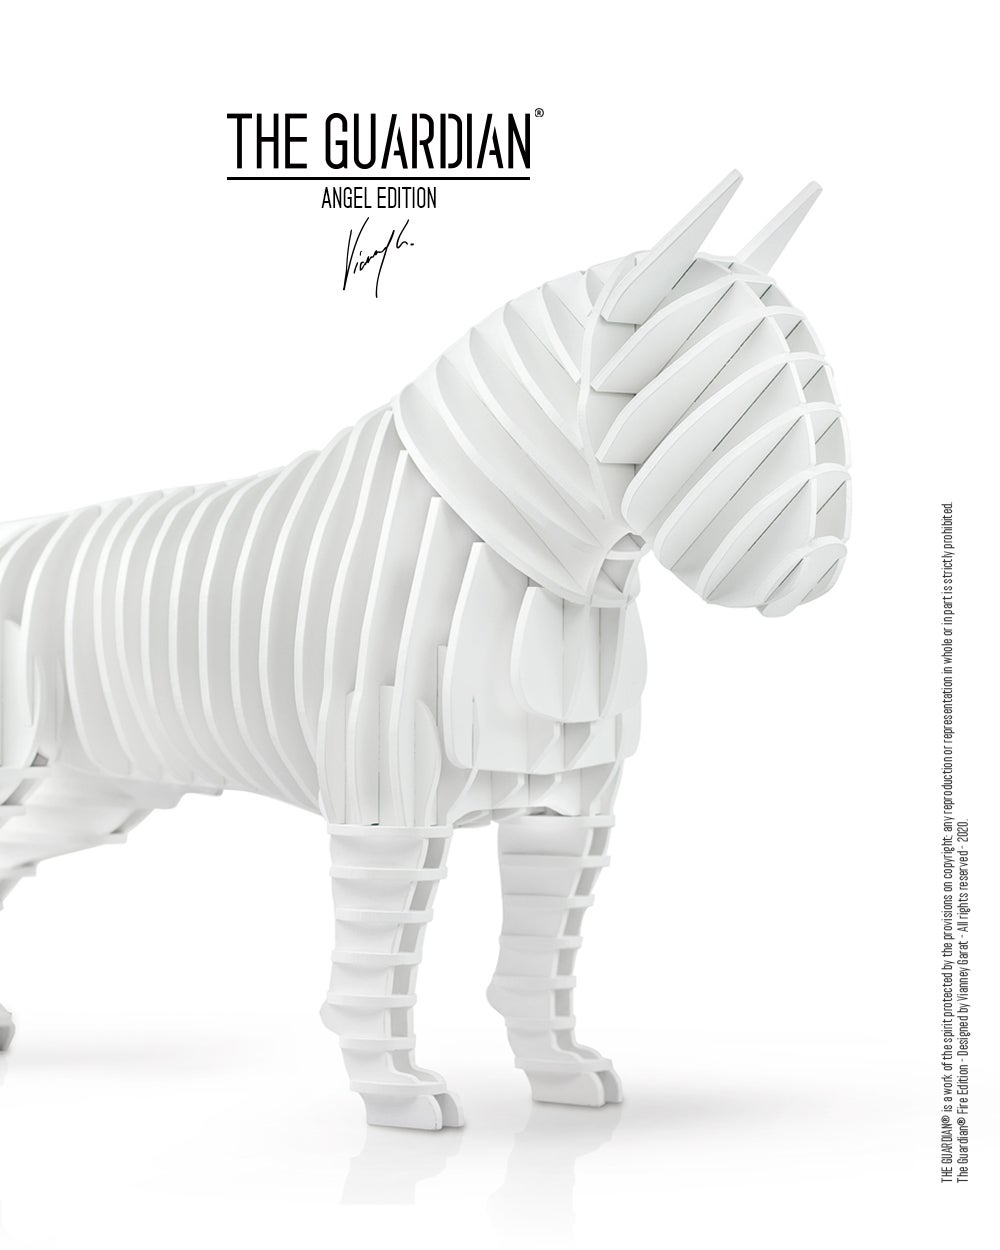 Image of The Guardian® - Angel Edition - Limited Edition - 100 units